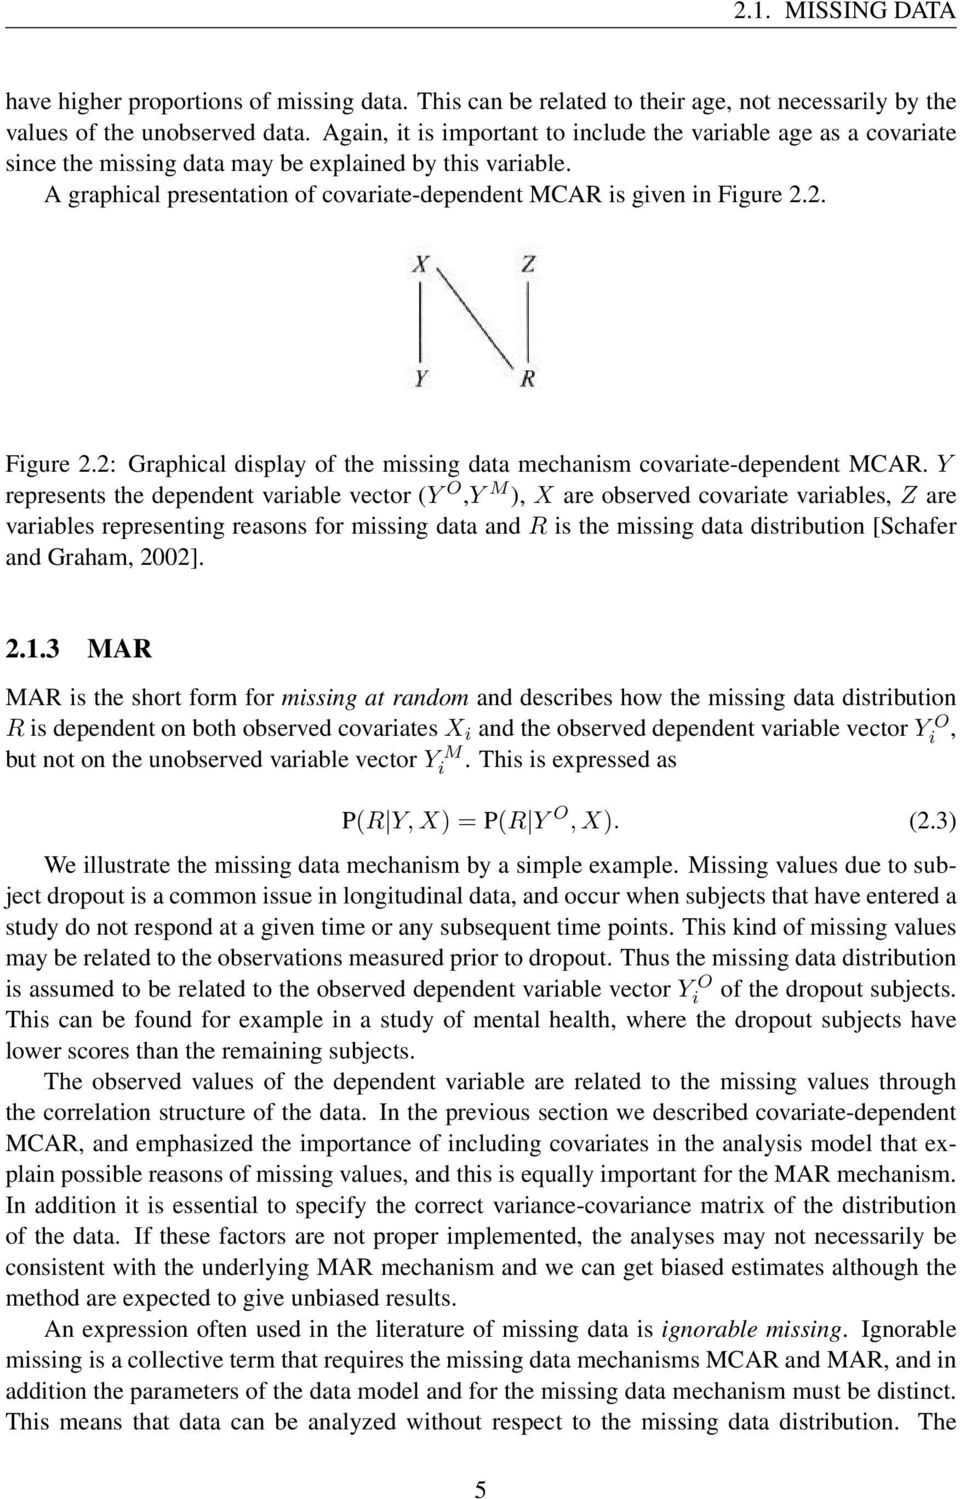 2. Figure 2.2: Graphical display of the missing data mechanism covariate-dependent MCAR.